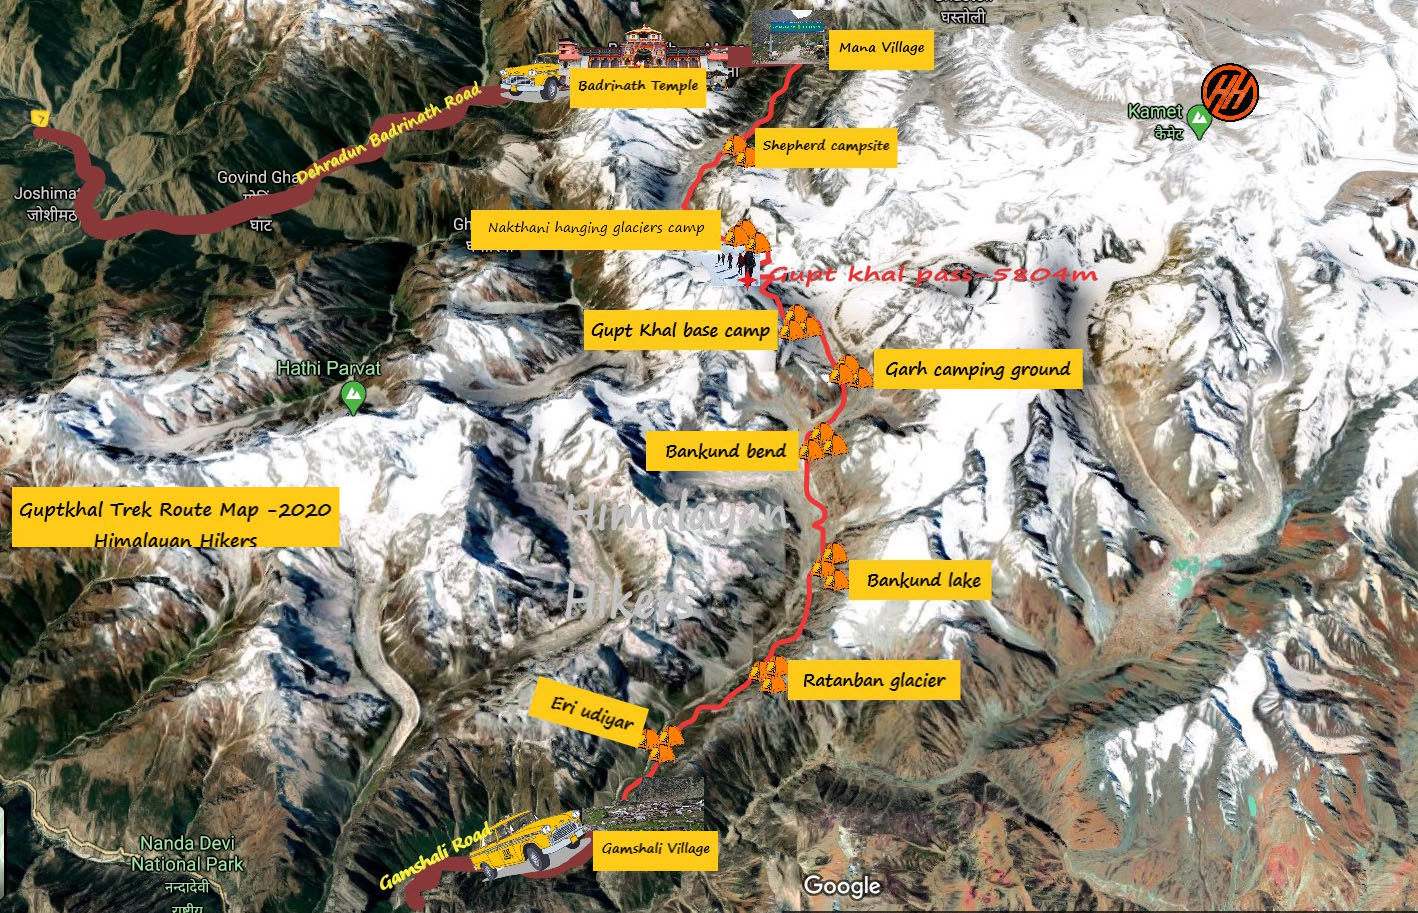 Gupt khal Trek Route Map